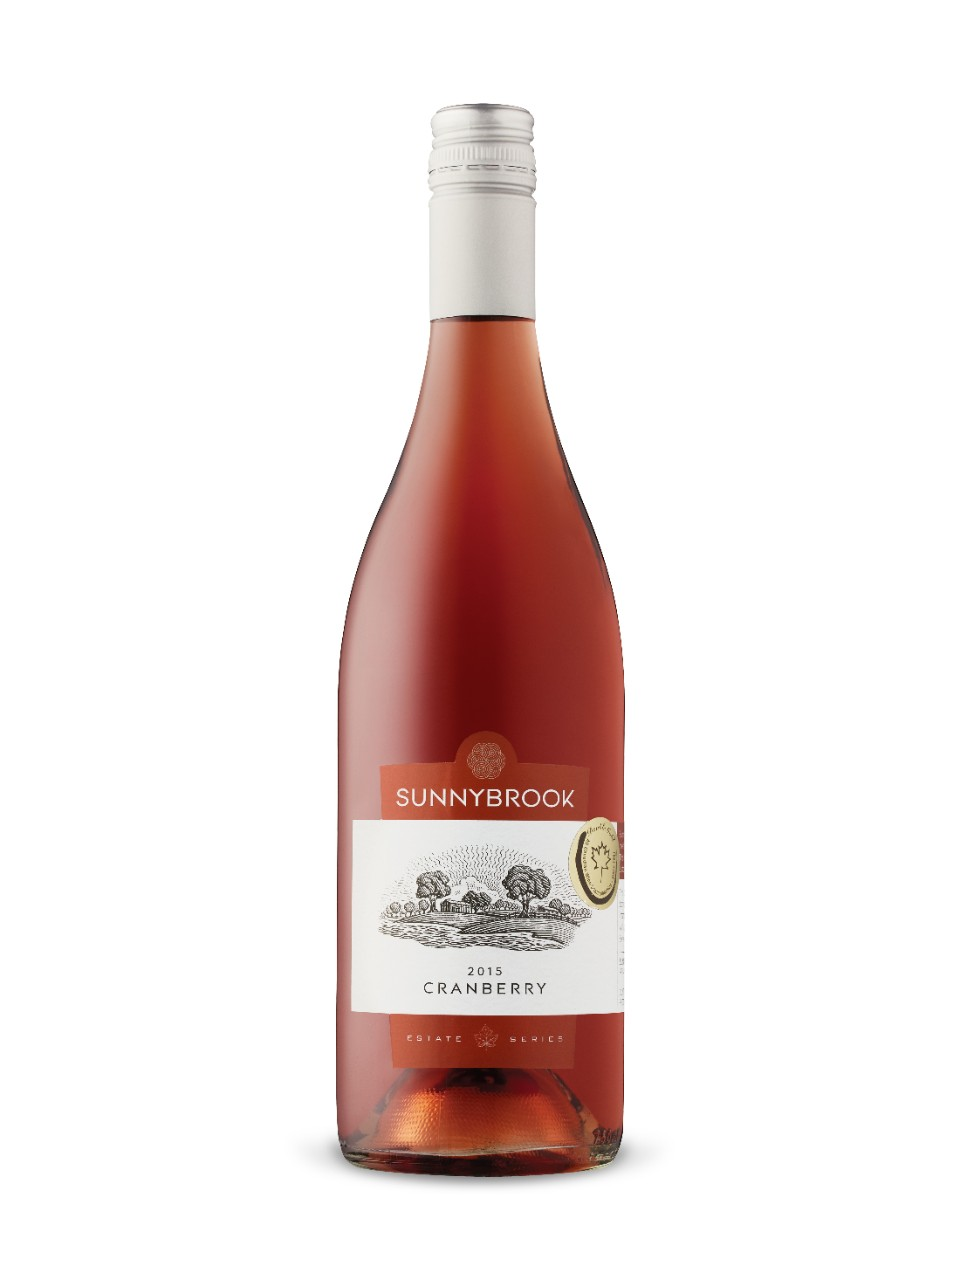 Cranberry Estate Series Sunnybrook 2015